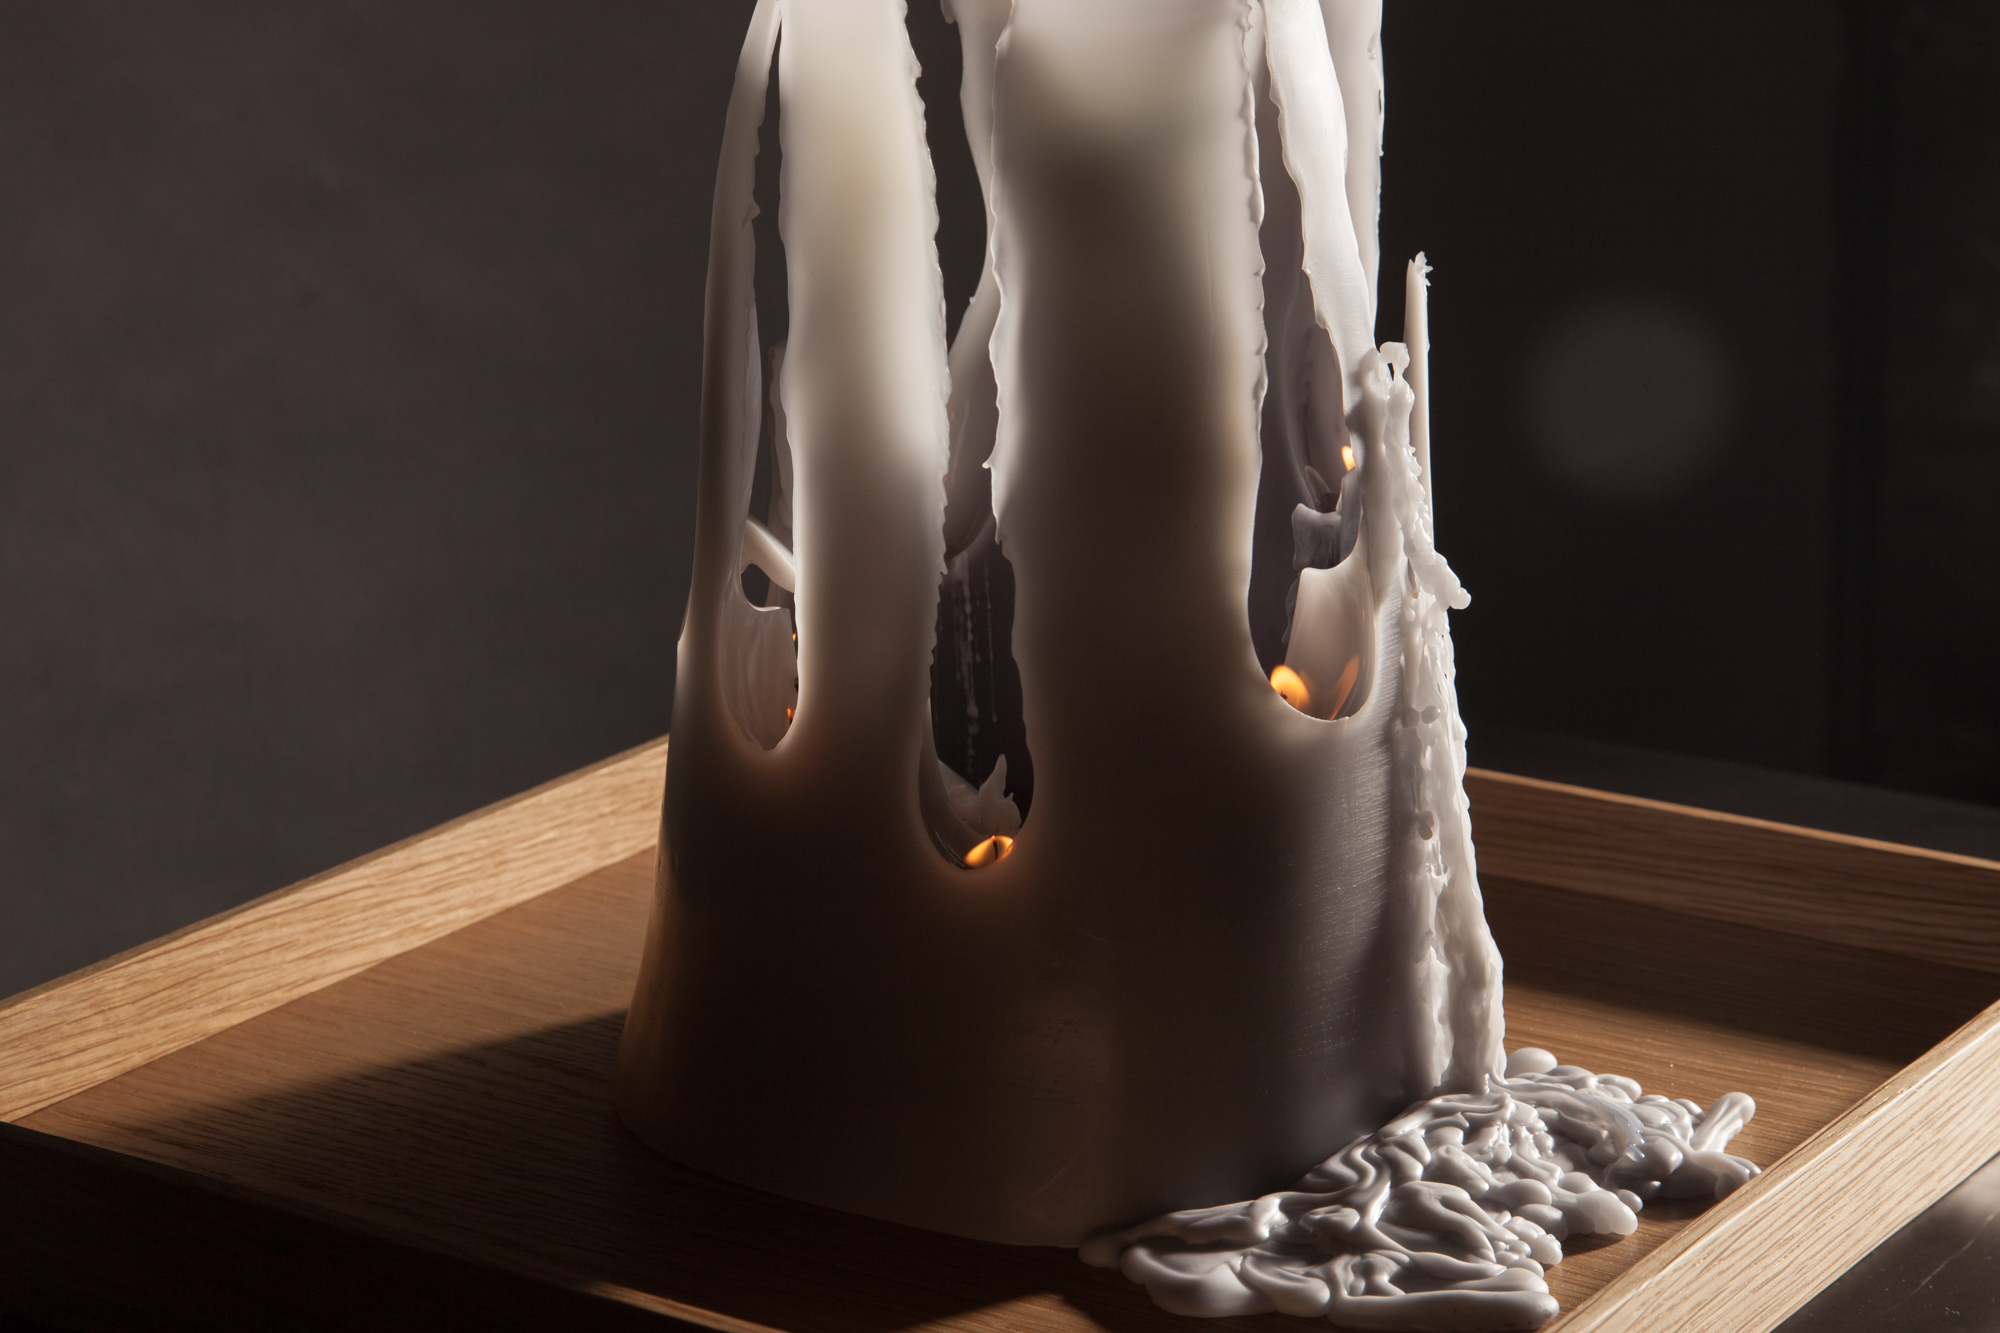 CANDLE_PIT-6335.jpg